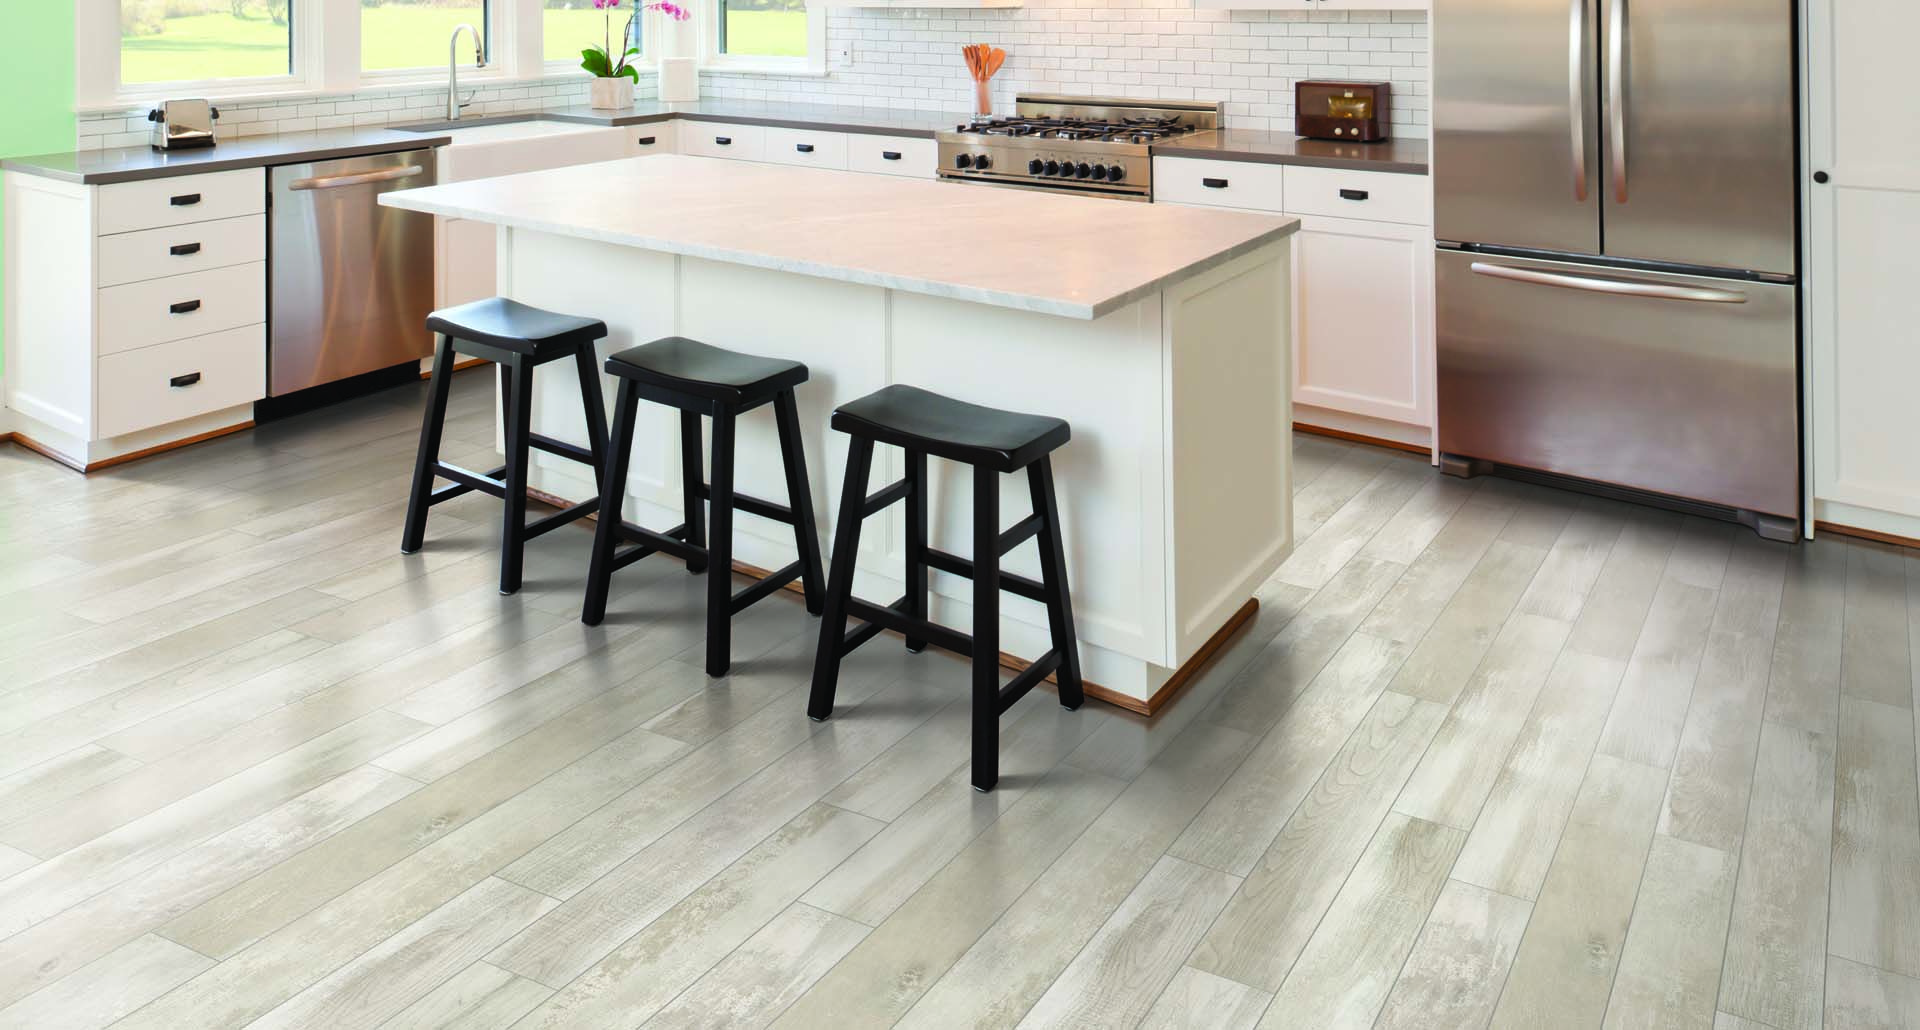 Textured Single Strip Plank Painted Chestnut Pergo Max Laminate Flooring Pergo Flooring Laminate Flooring Wood Laminate